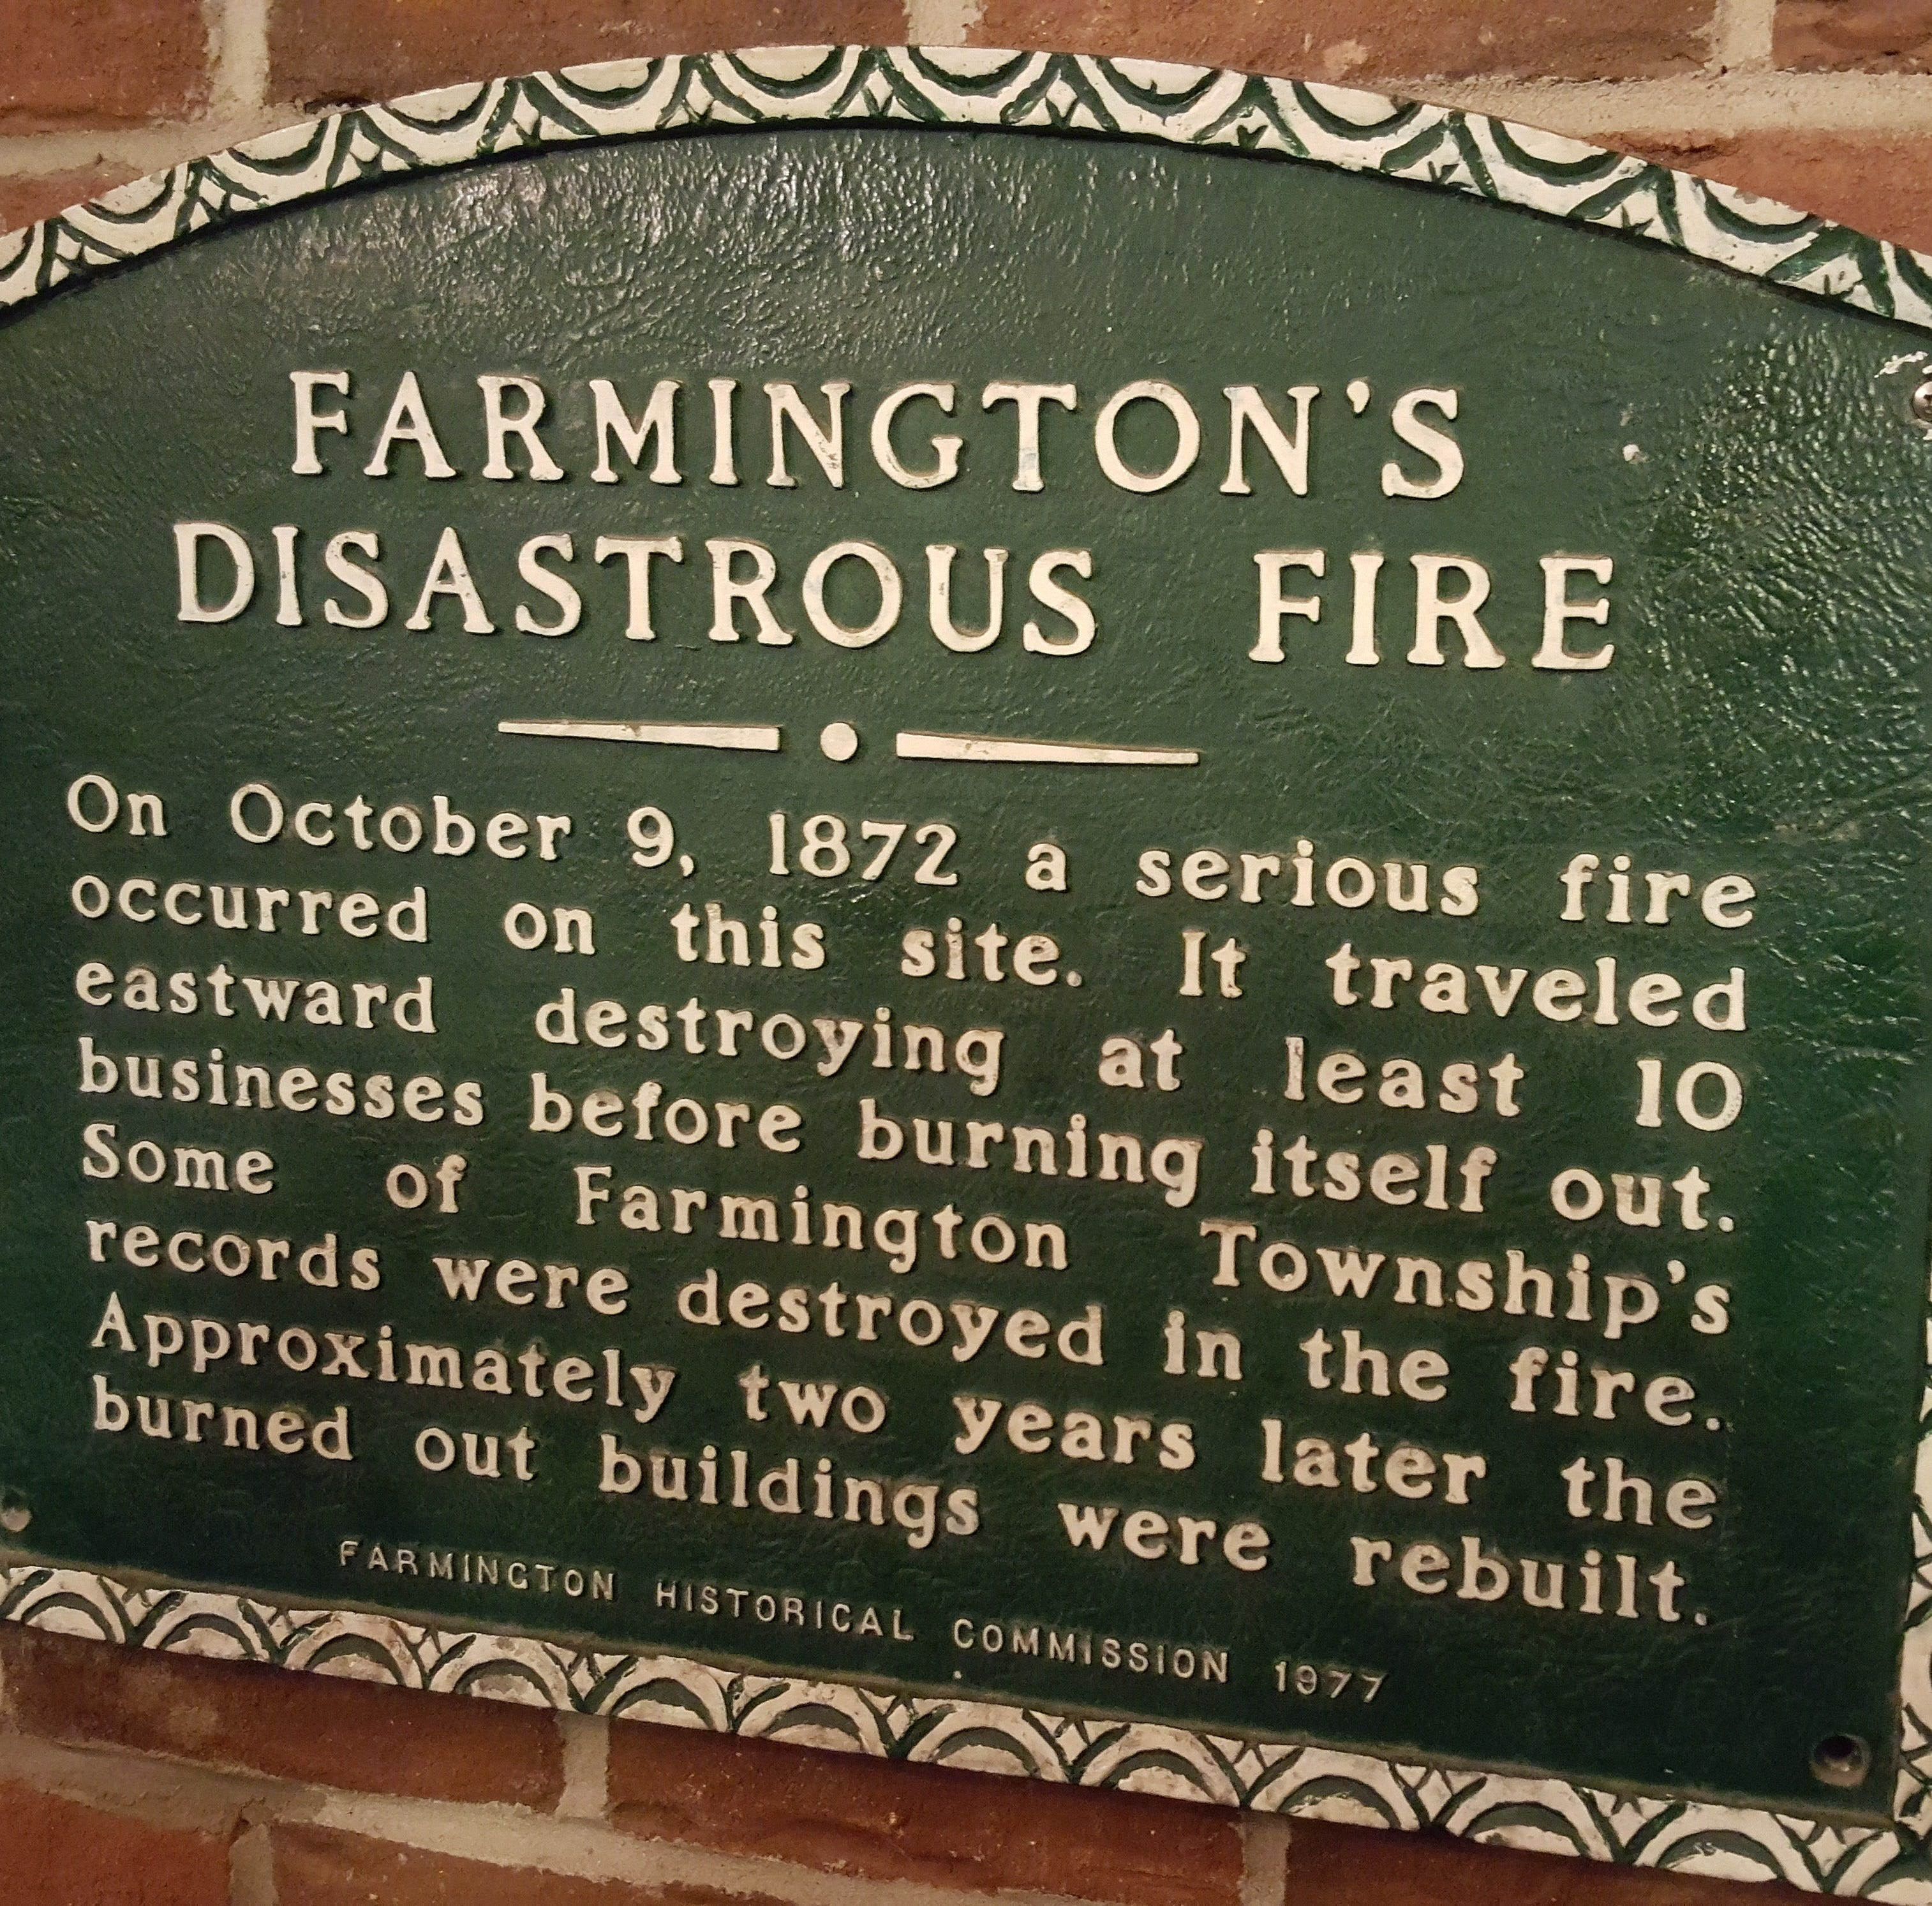 A Brief Look Back: Historic fires in local communities